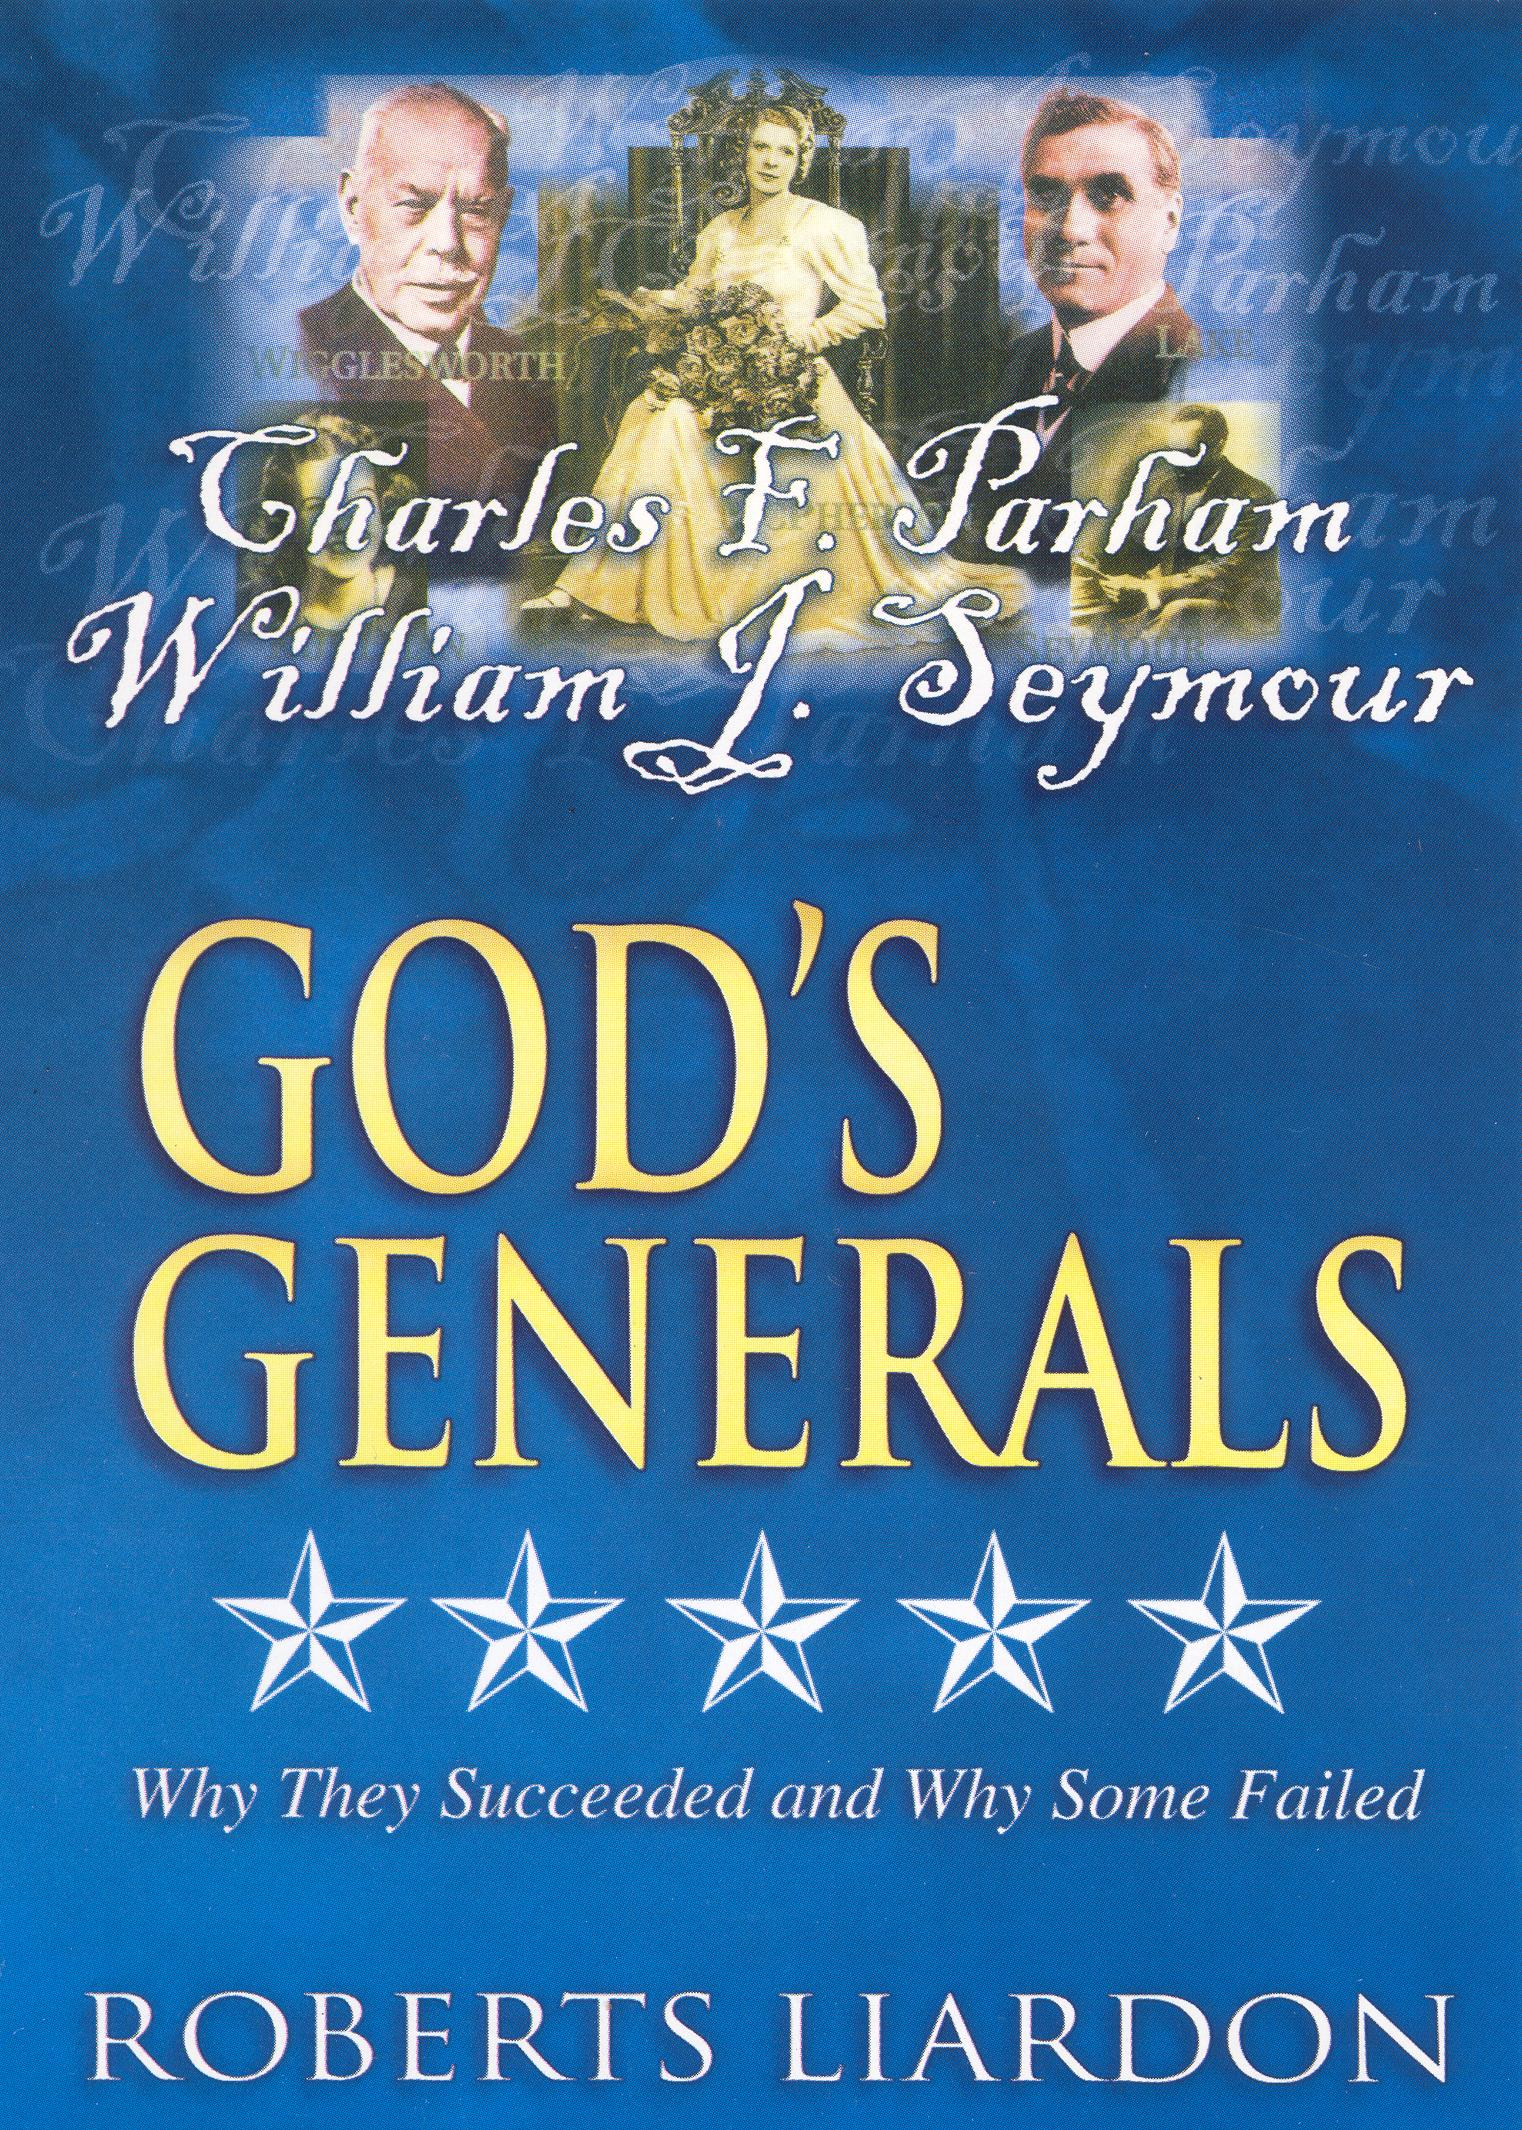 God's Generals: Charles F. Parham and William J. Seymour - The Fathers of Pentacostalism